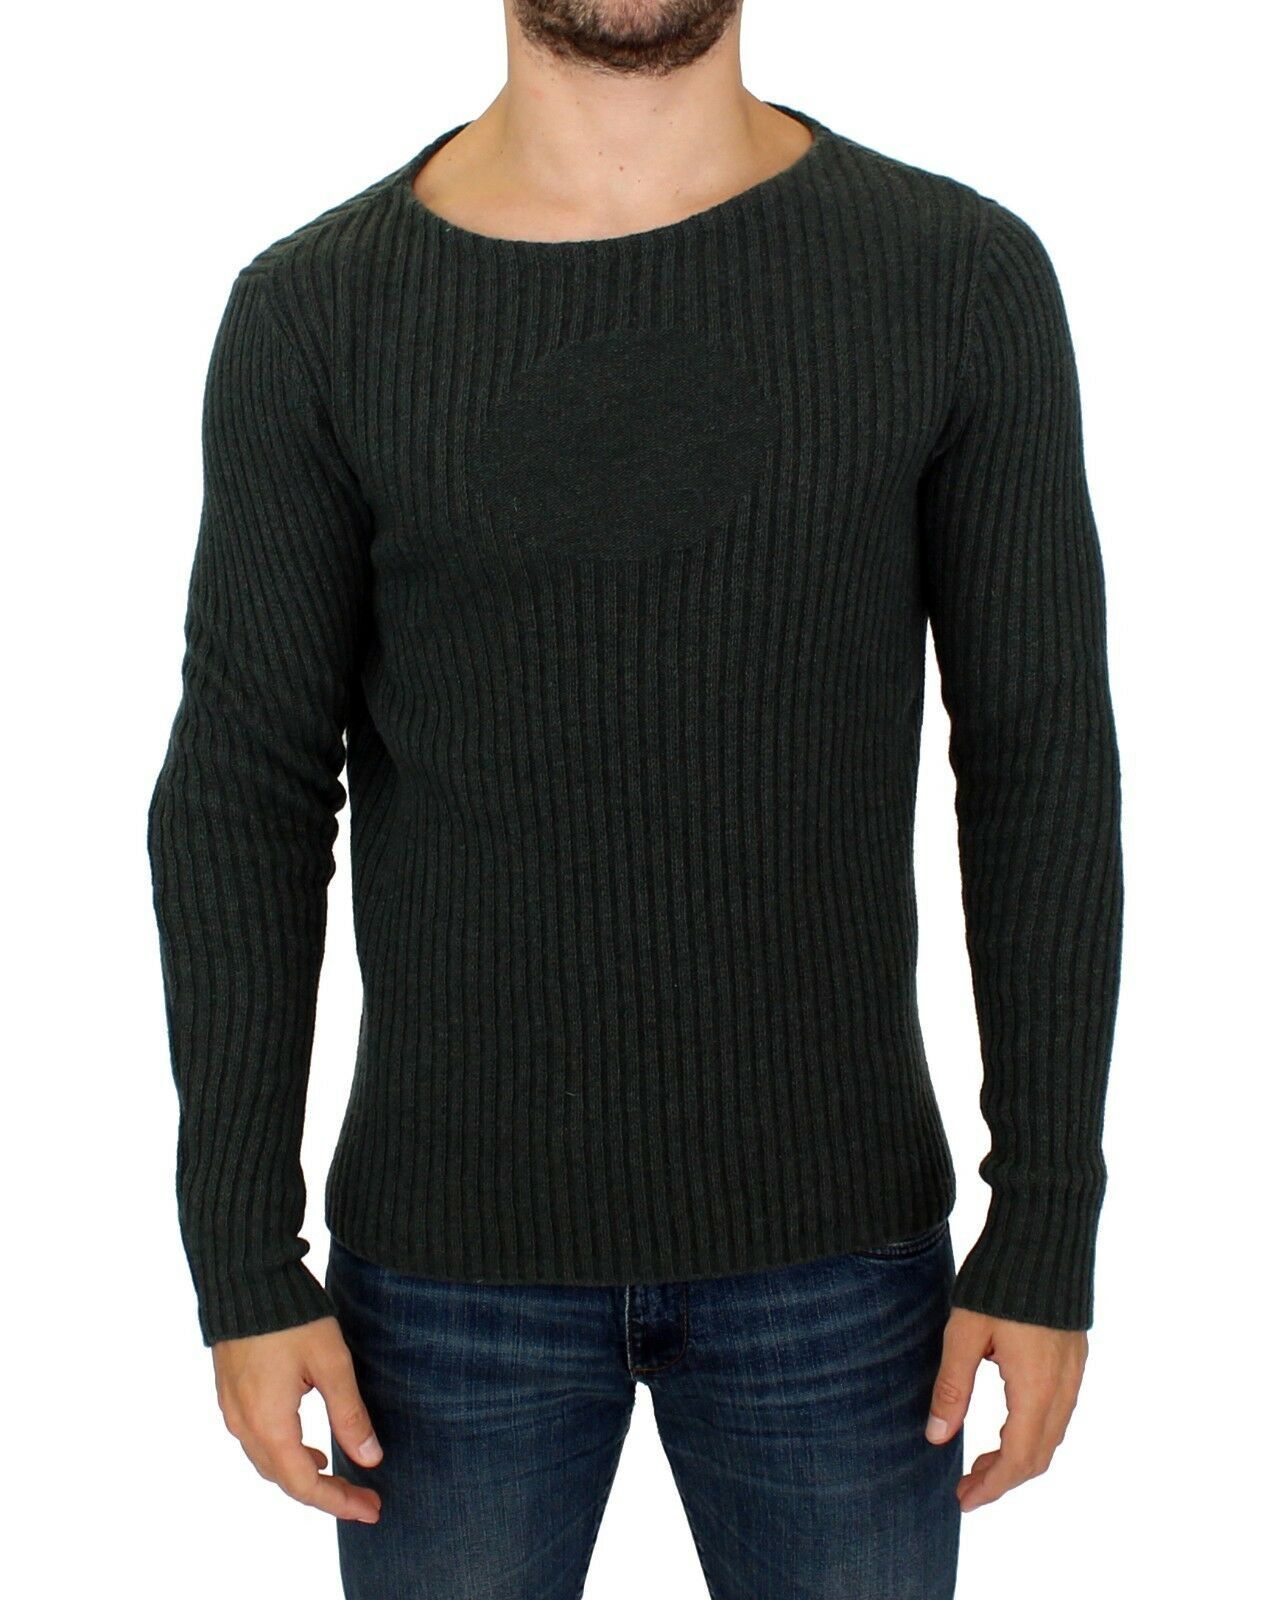 NEW 380 Gianfranco GF FERRE Grün Knitted Wool Blend Pullover Sweater Top s. XL